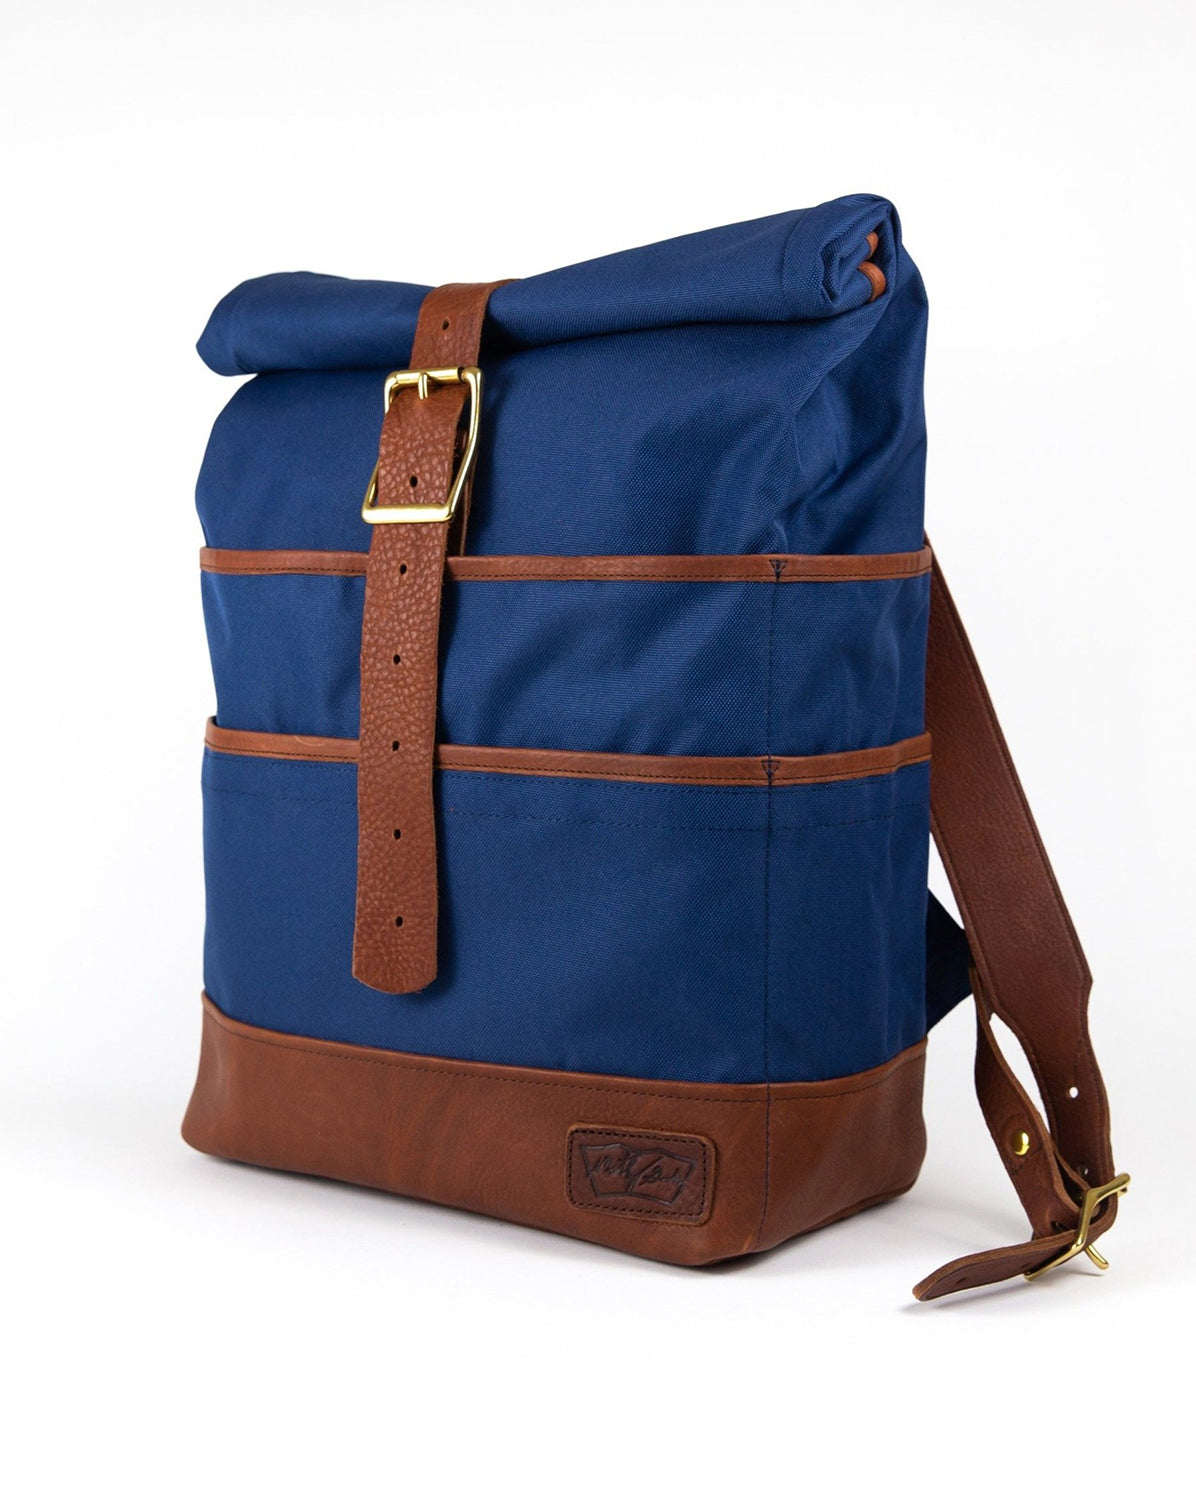 Weekender in Navy with Brown Leather  CLOSEOUT COLOR...20% OFF SALE!